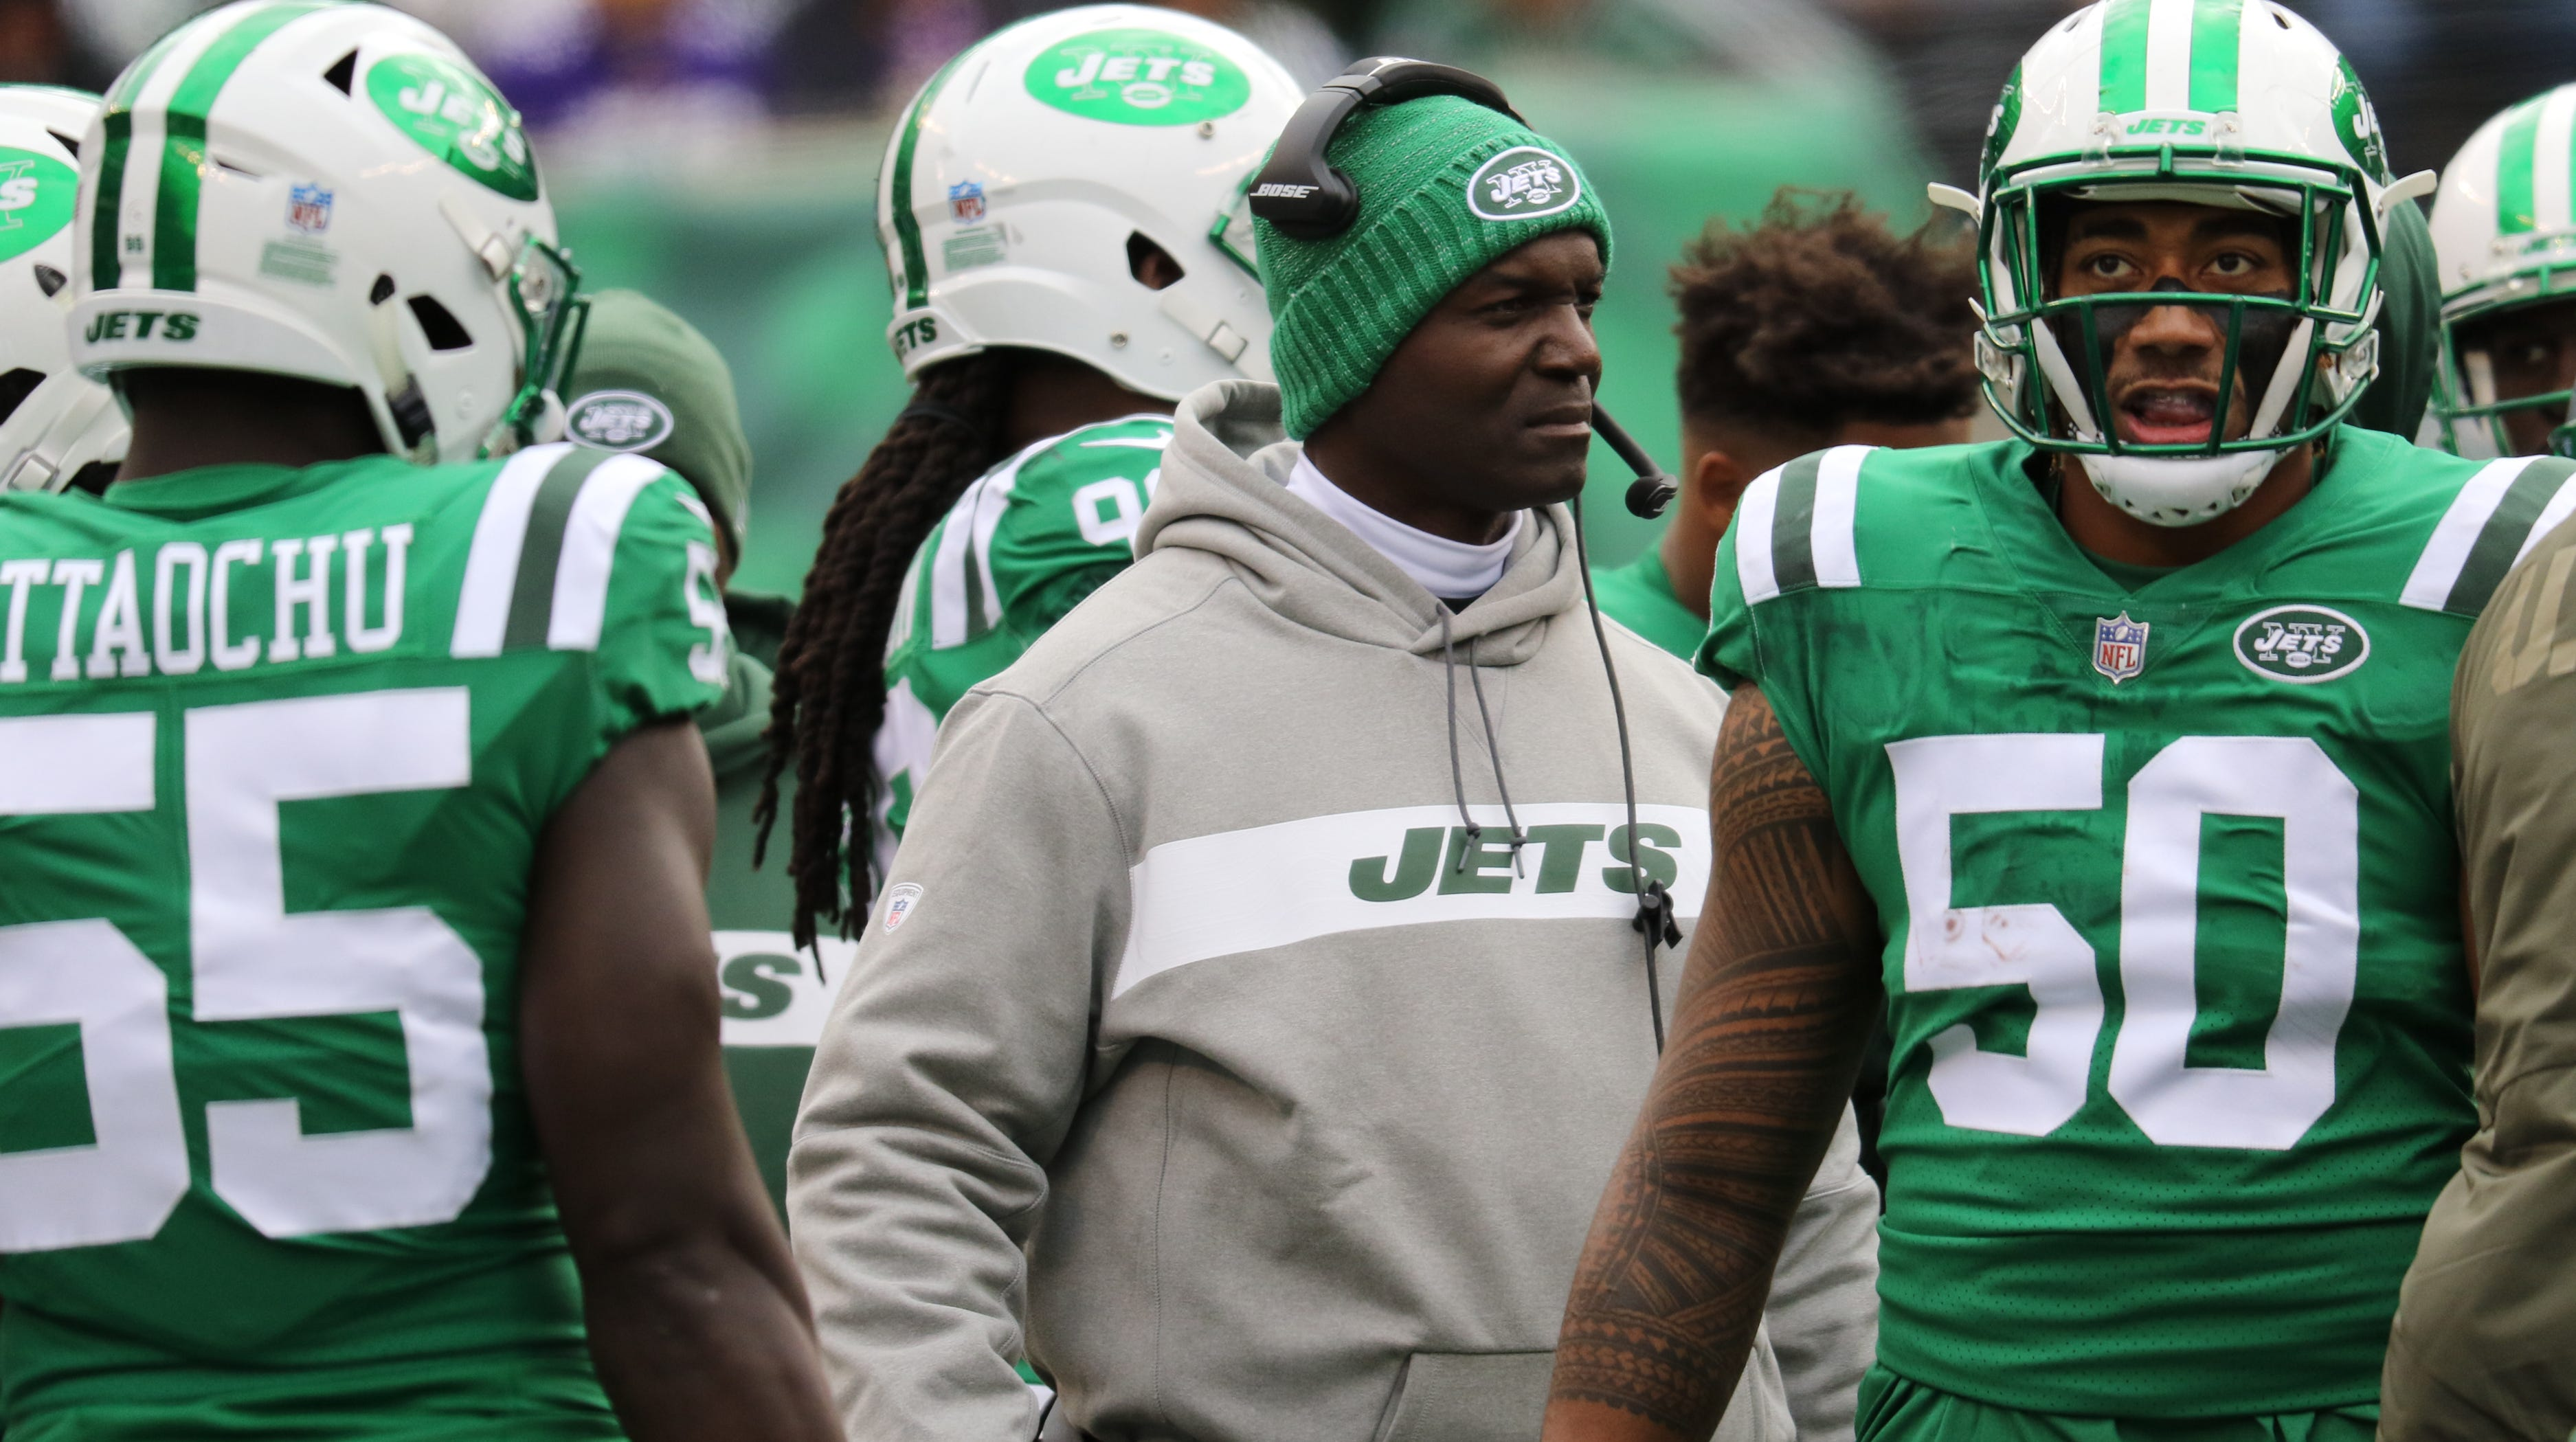 Jets Head Coach, Todd Bowles and Frankie Luvu (50) are shown during the first half.  Sunday, October 21, 2018